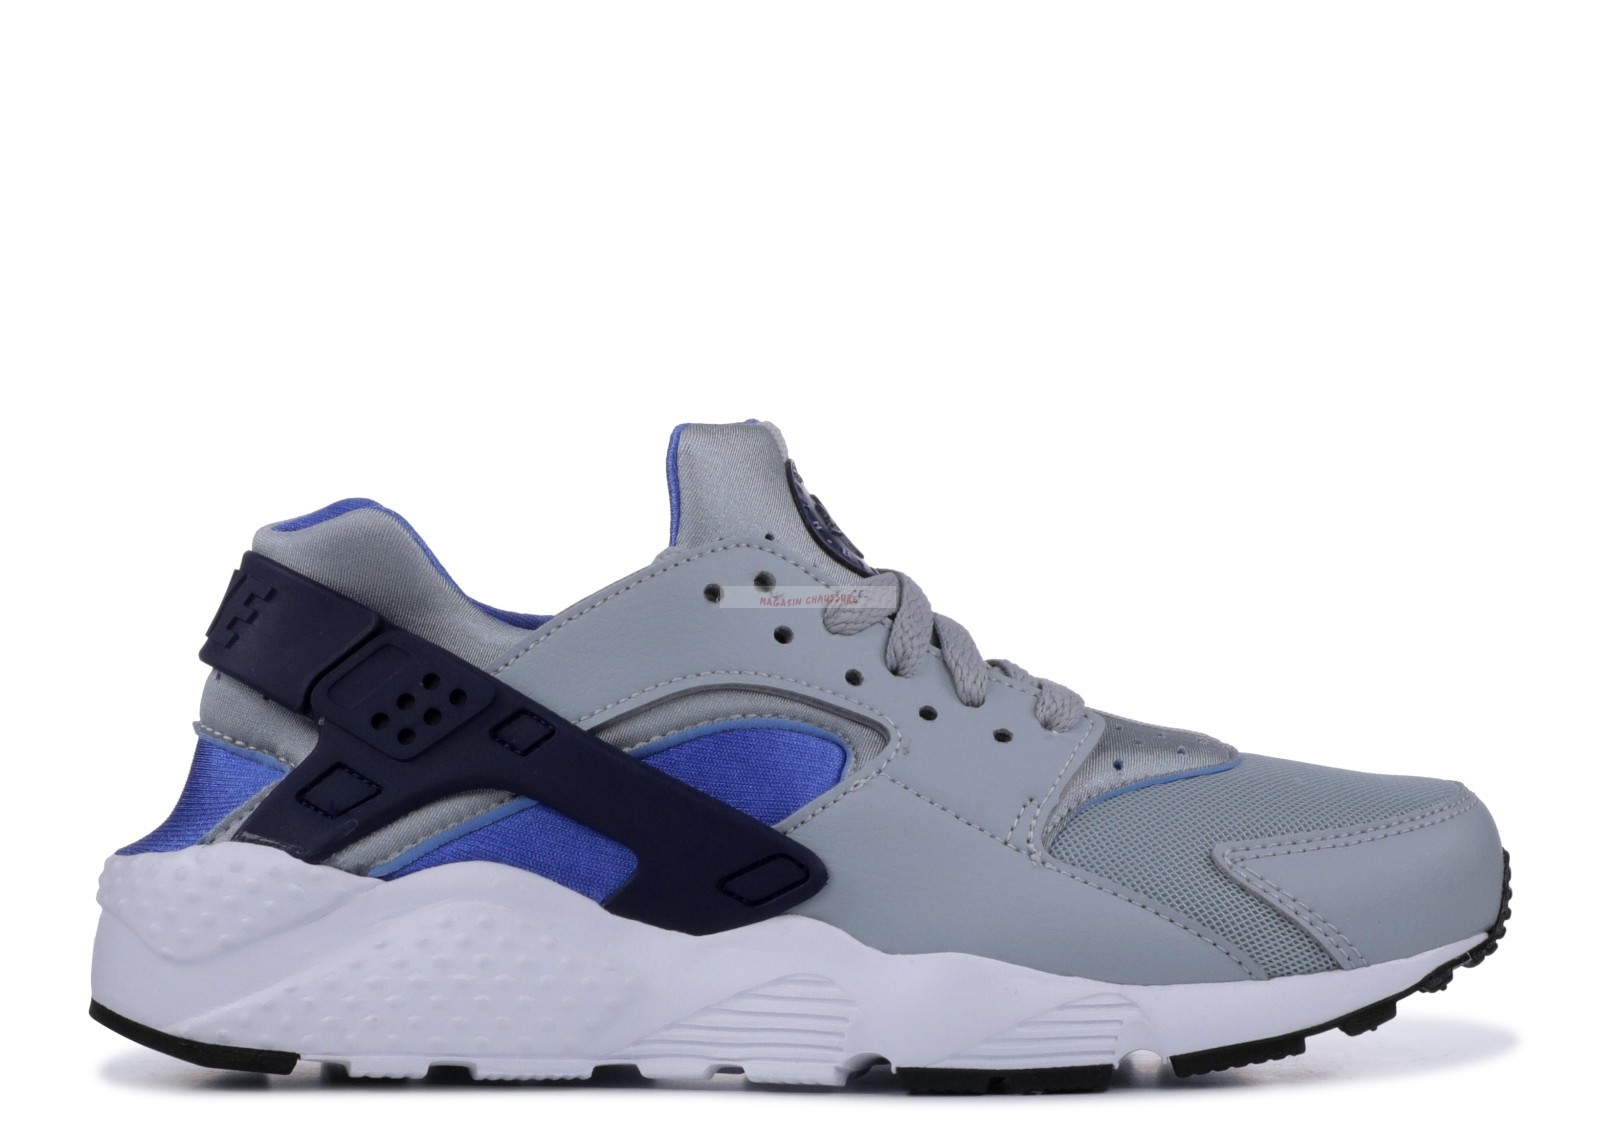 Nike Air Huarache Run (Gs) Gris Bleu (654275-022) Chaussure de Basket